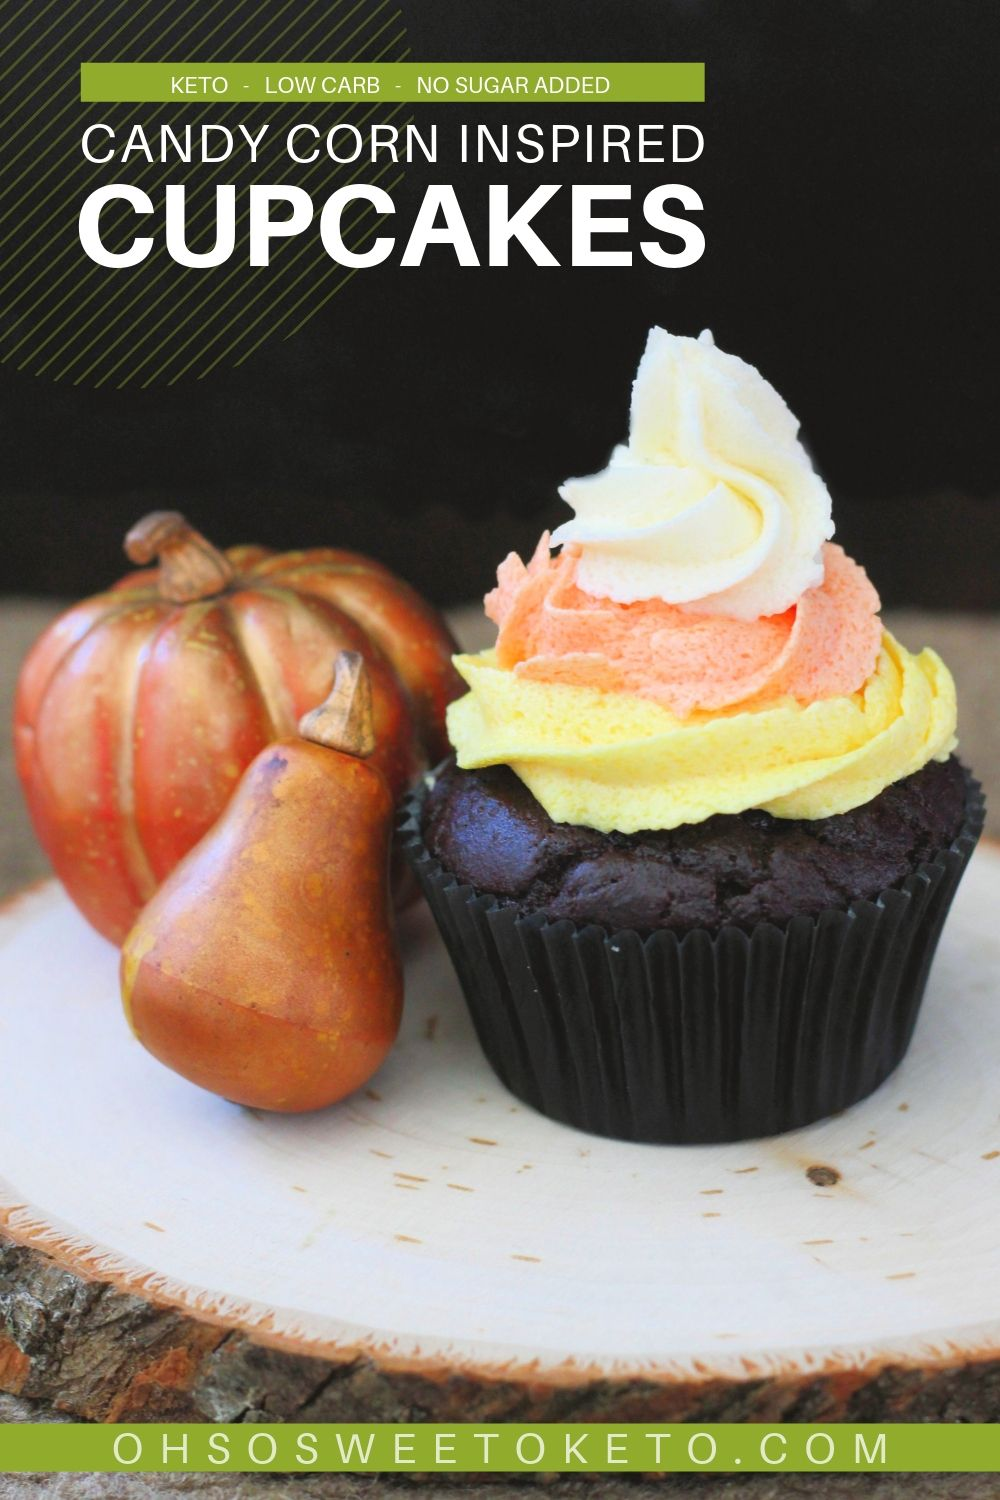 Candy Corn Inspired Cupcakes - Chocolate with Buttercream Frosting {Keto, Low-Carb}